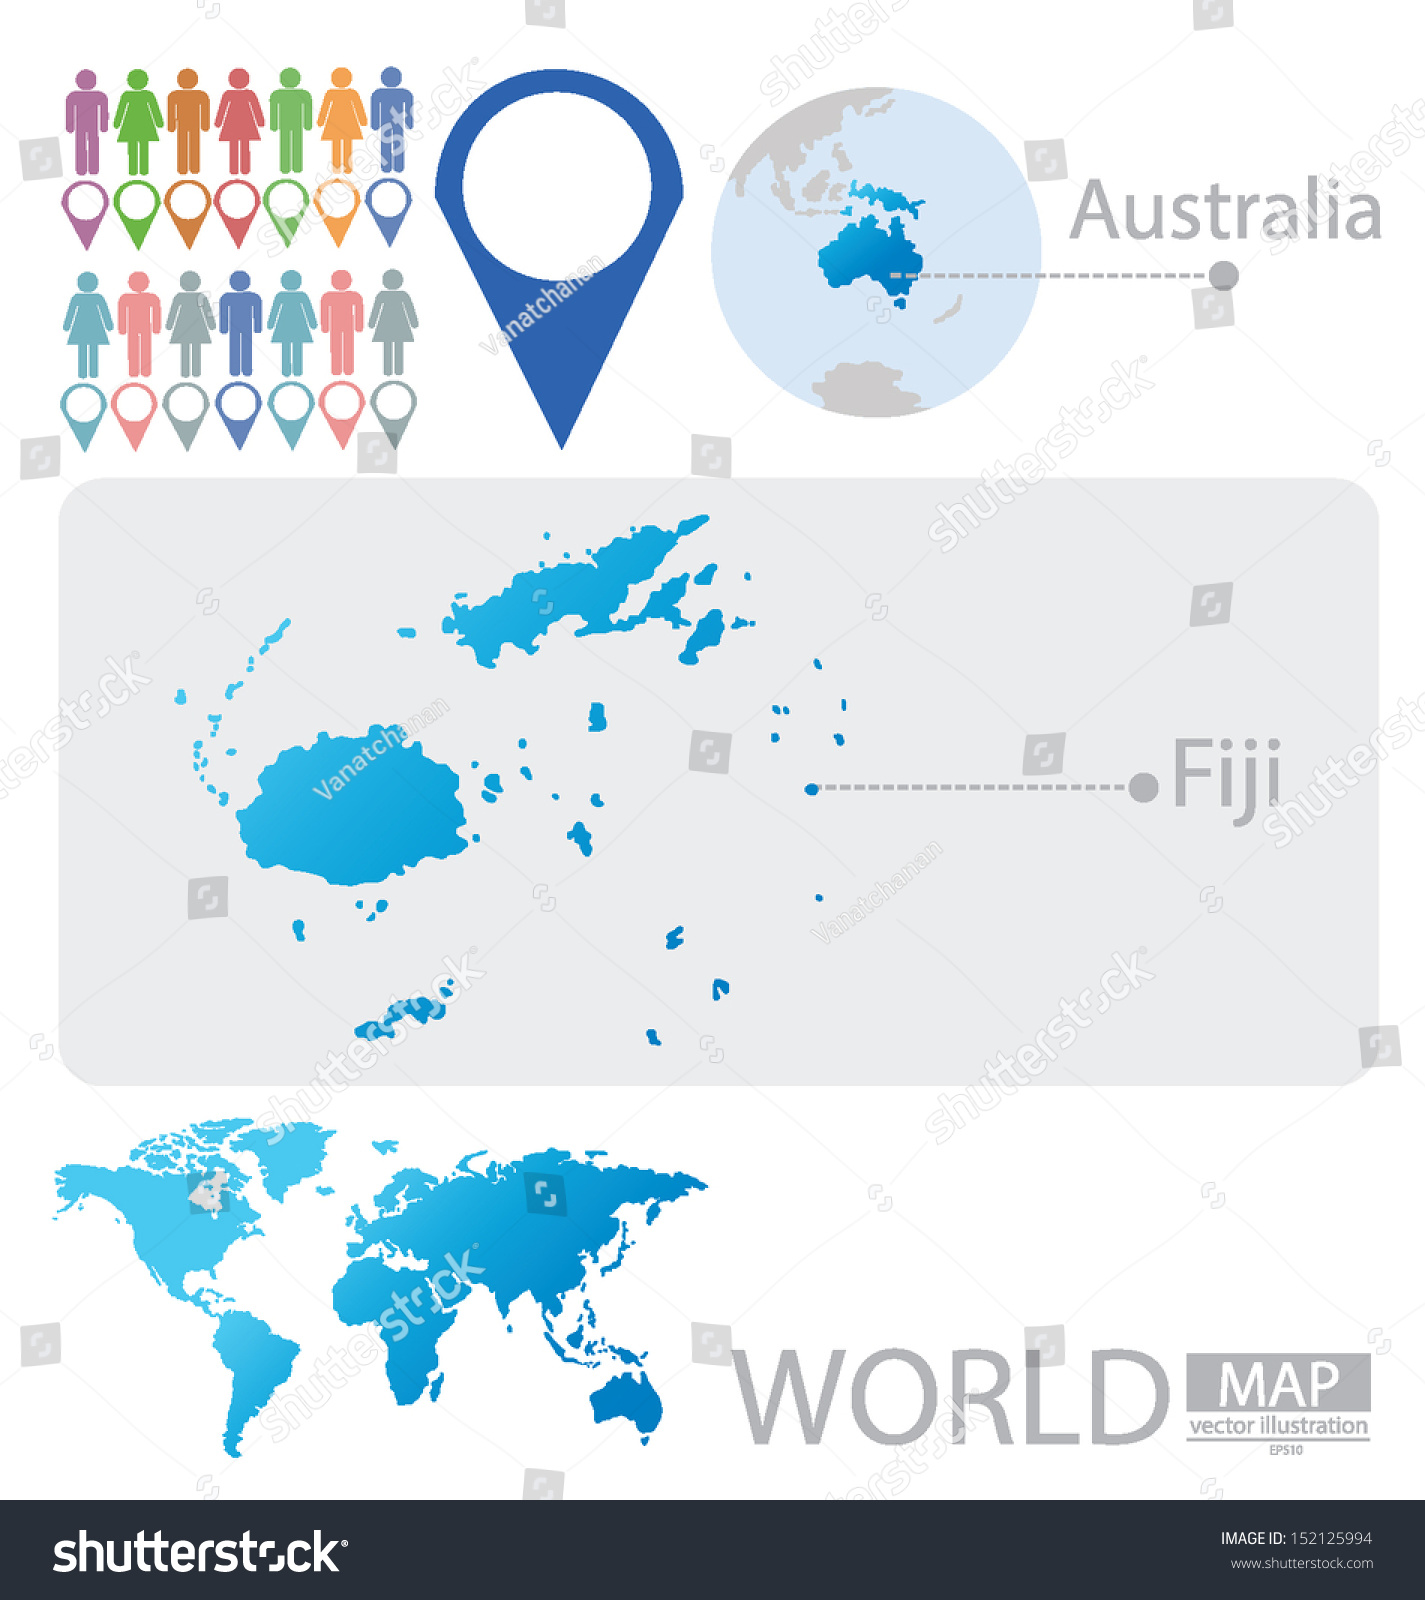 Republic Fiji Australia World Map Vector Stock Vector Royalty Free